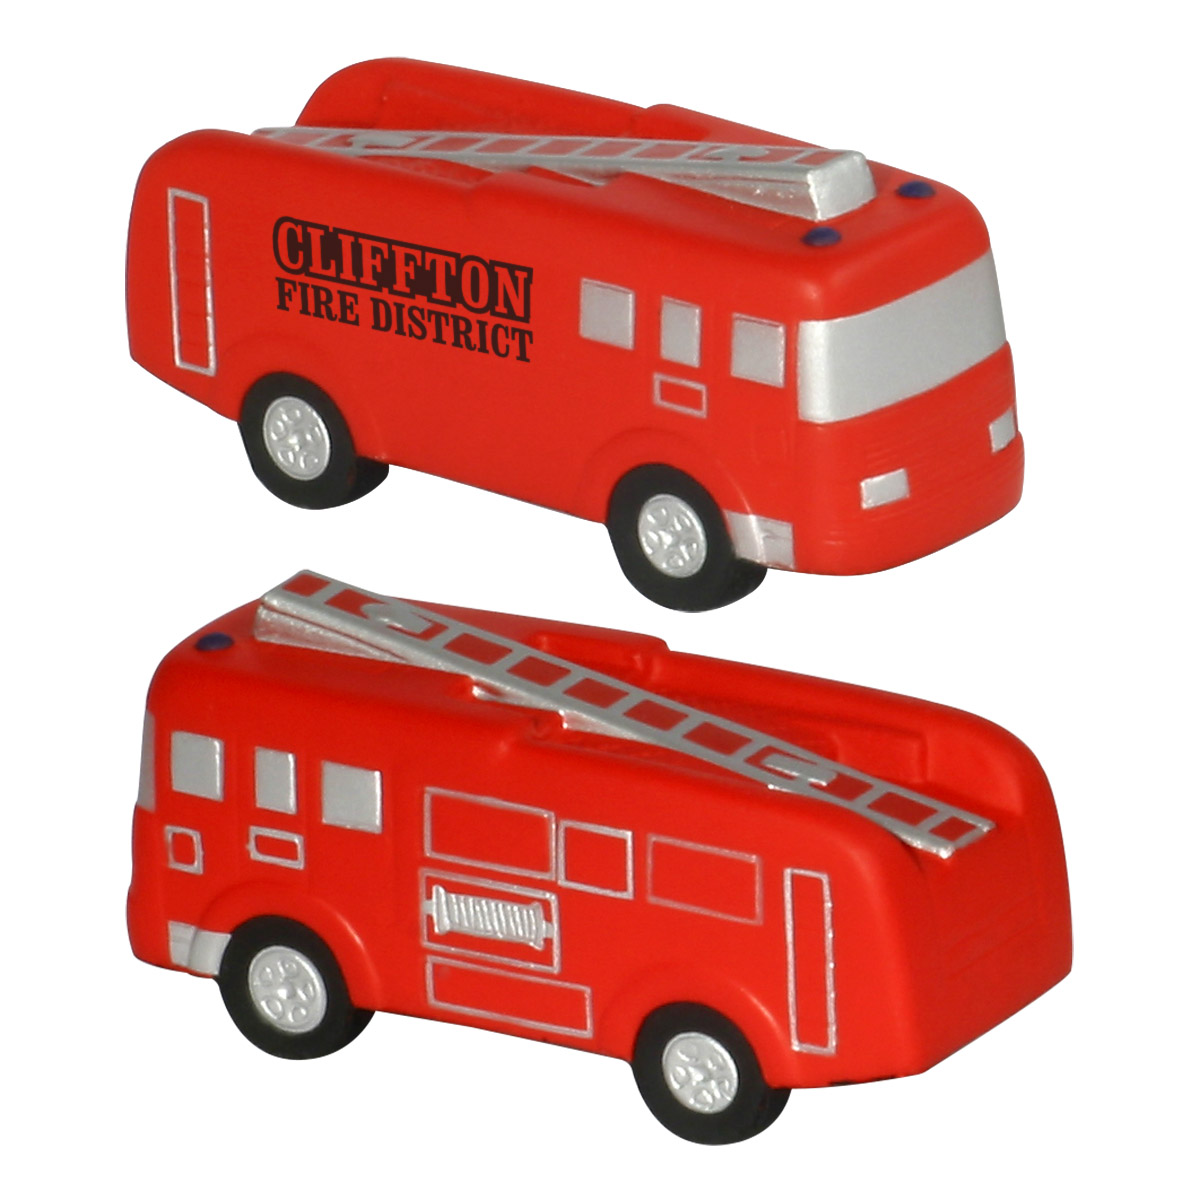 Fire Truck Stress Reliever, LCC-FT25 - 1 Colour Imprint